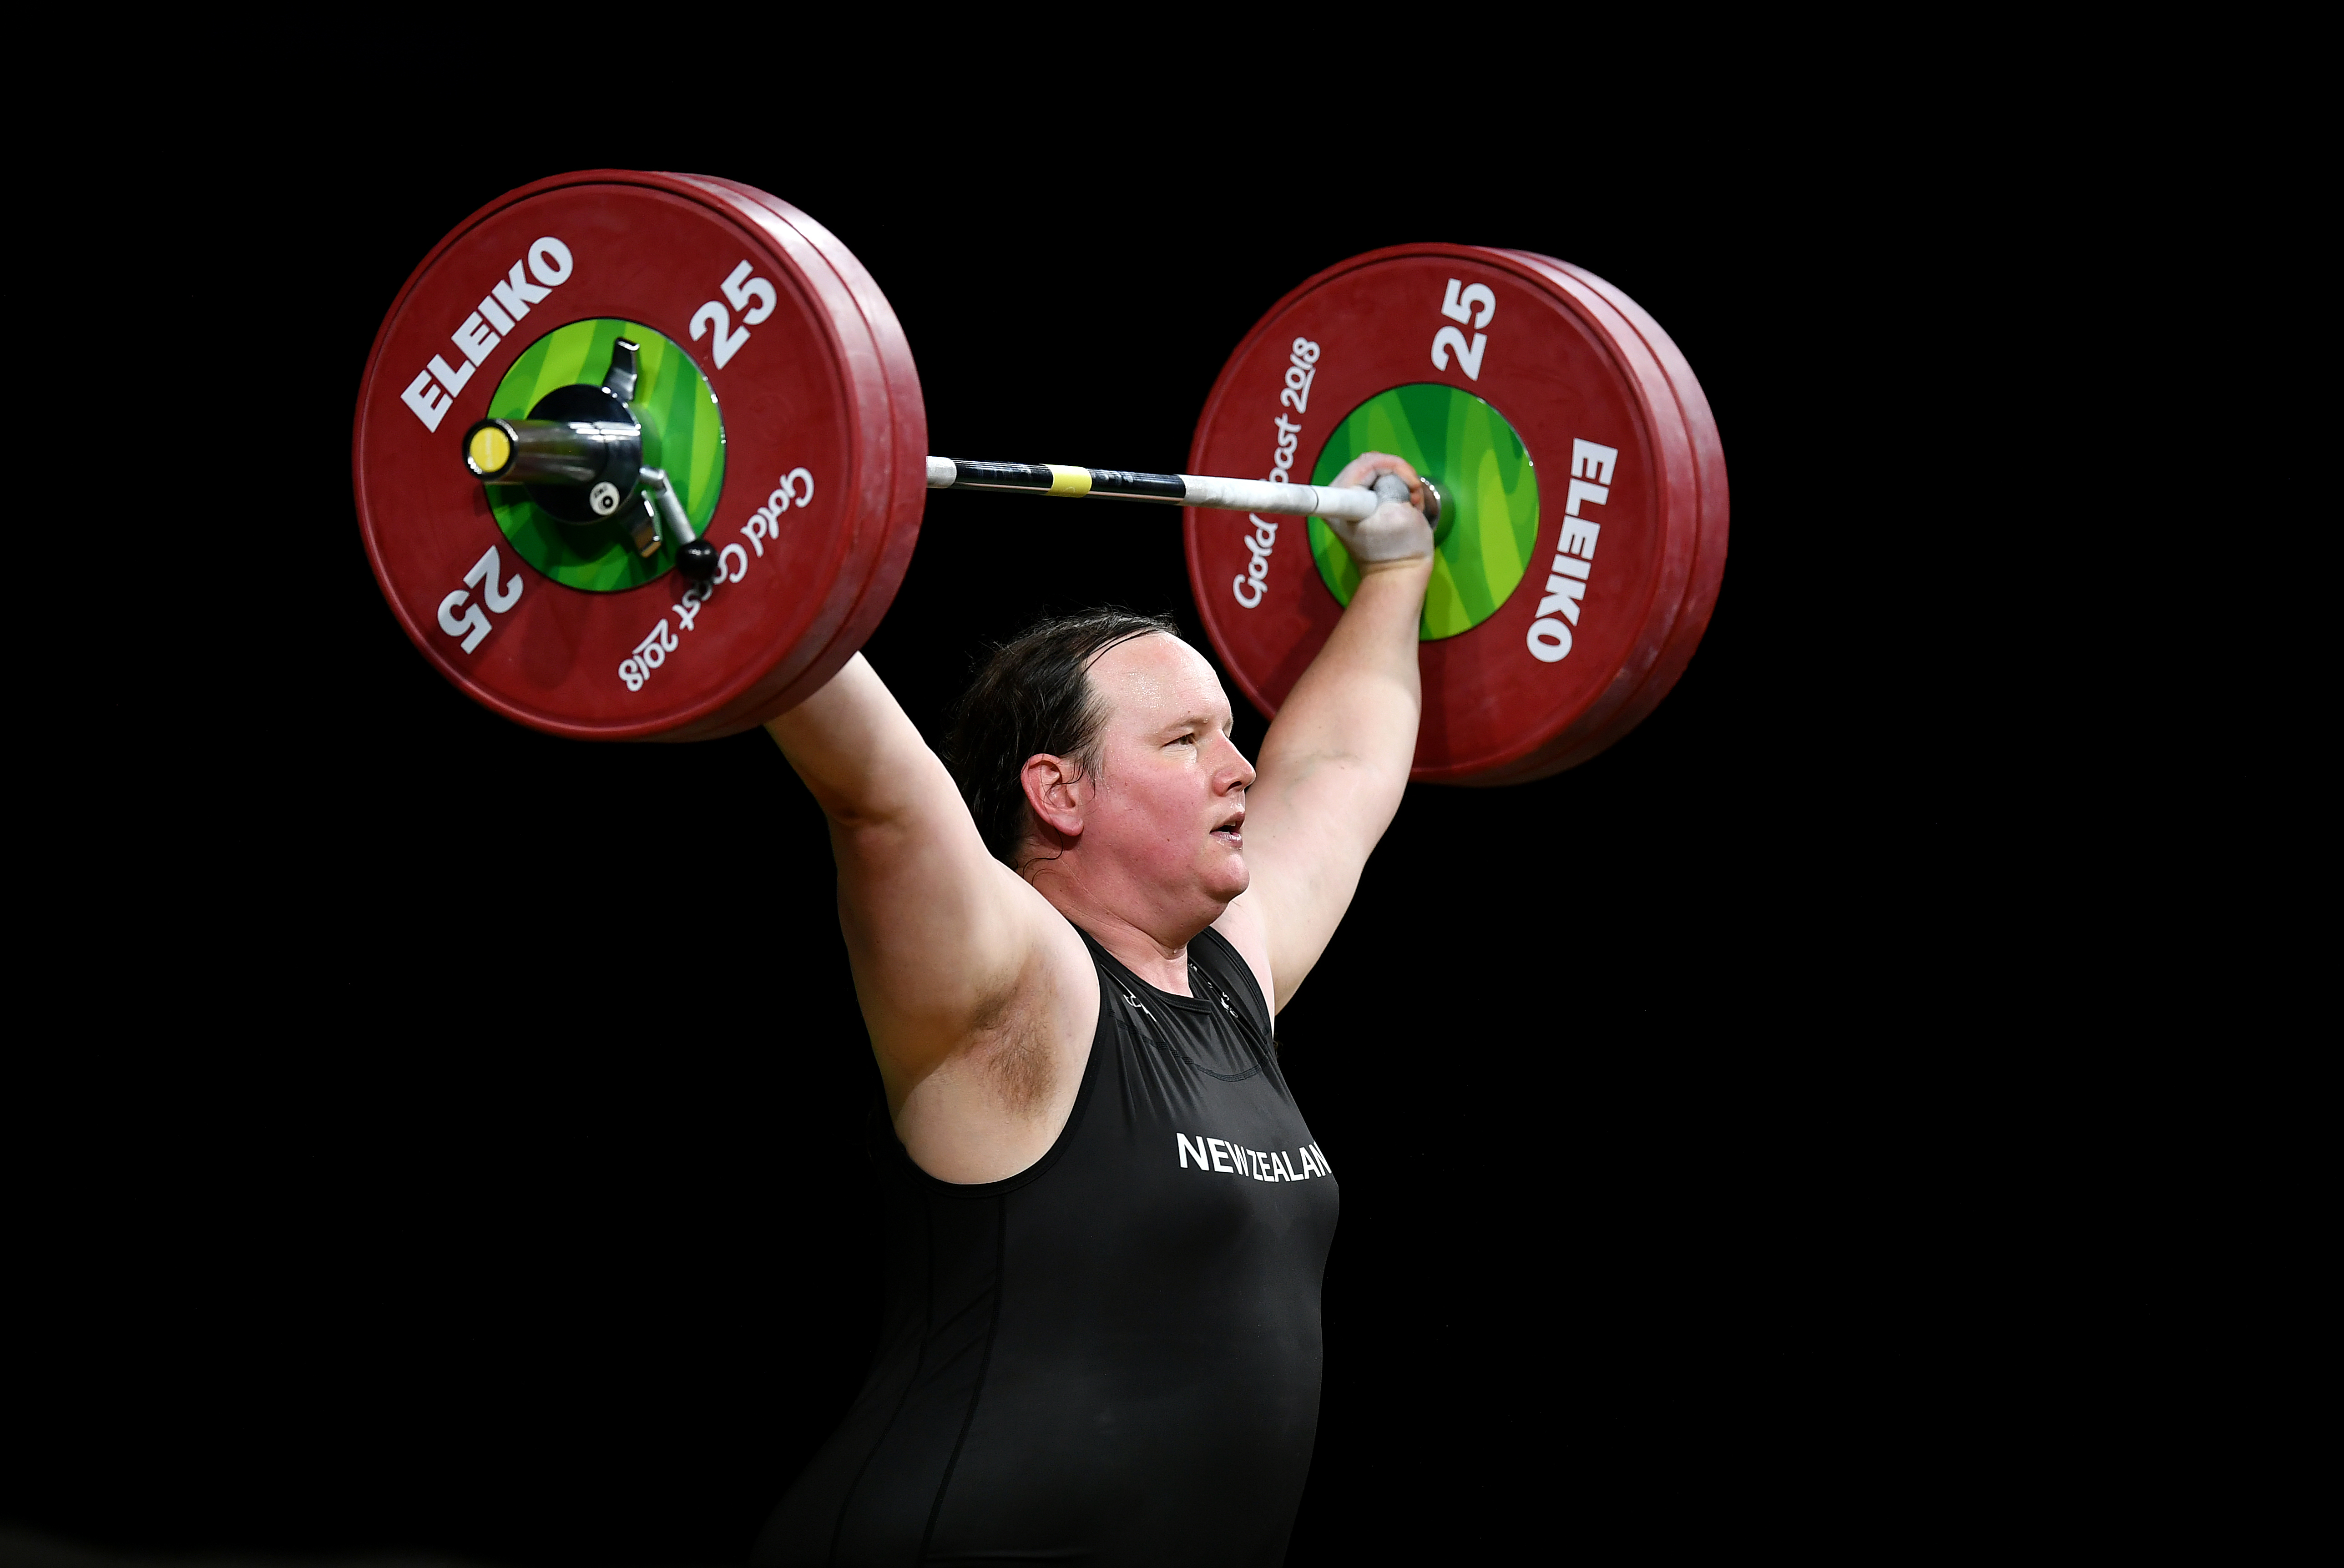 Weightlifter Laurel Hubbard Poised To Become First Transgender Olympian